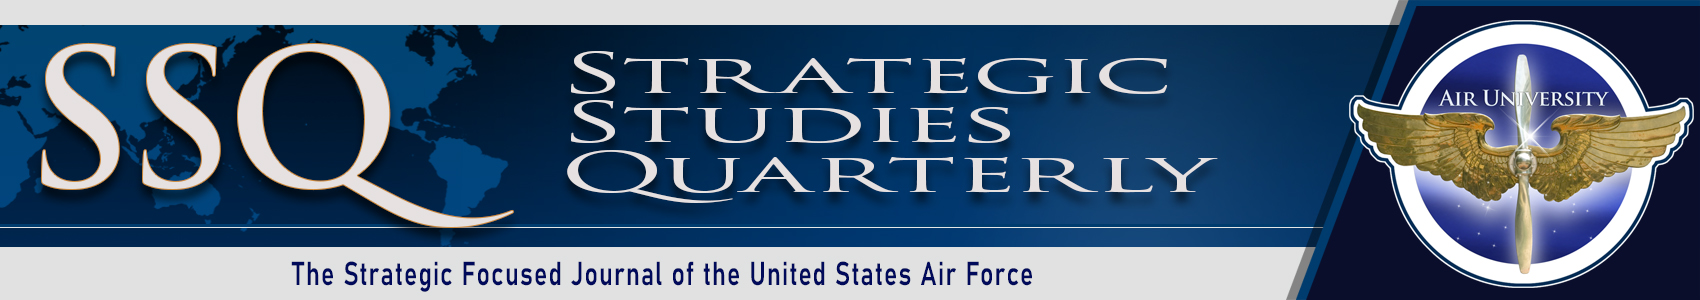 Strategic Studies Quarterly